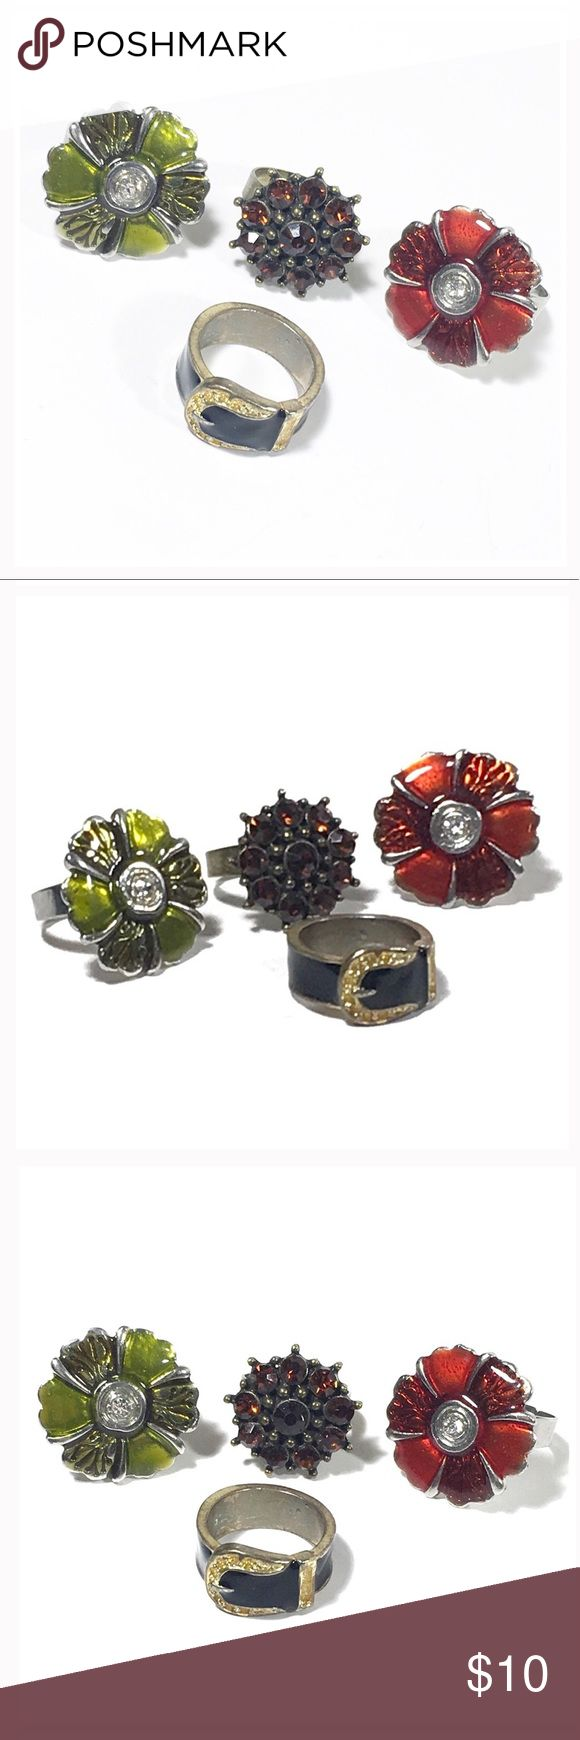 4 Rings These four rings will add a fun touch to any outfit. Three are adjustable. The black and gold belt ring is a size 6.   Posh Mishmosh 🌺 Jewelry Rings